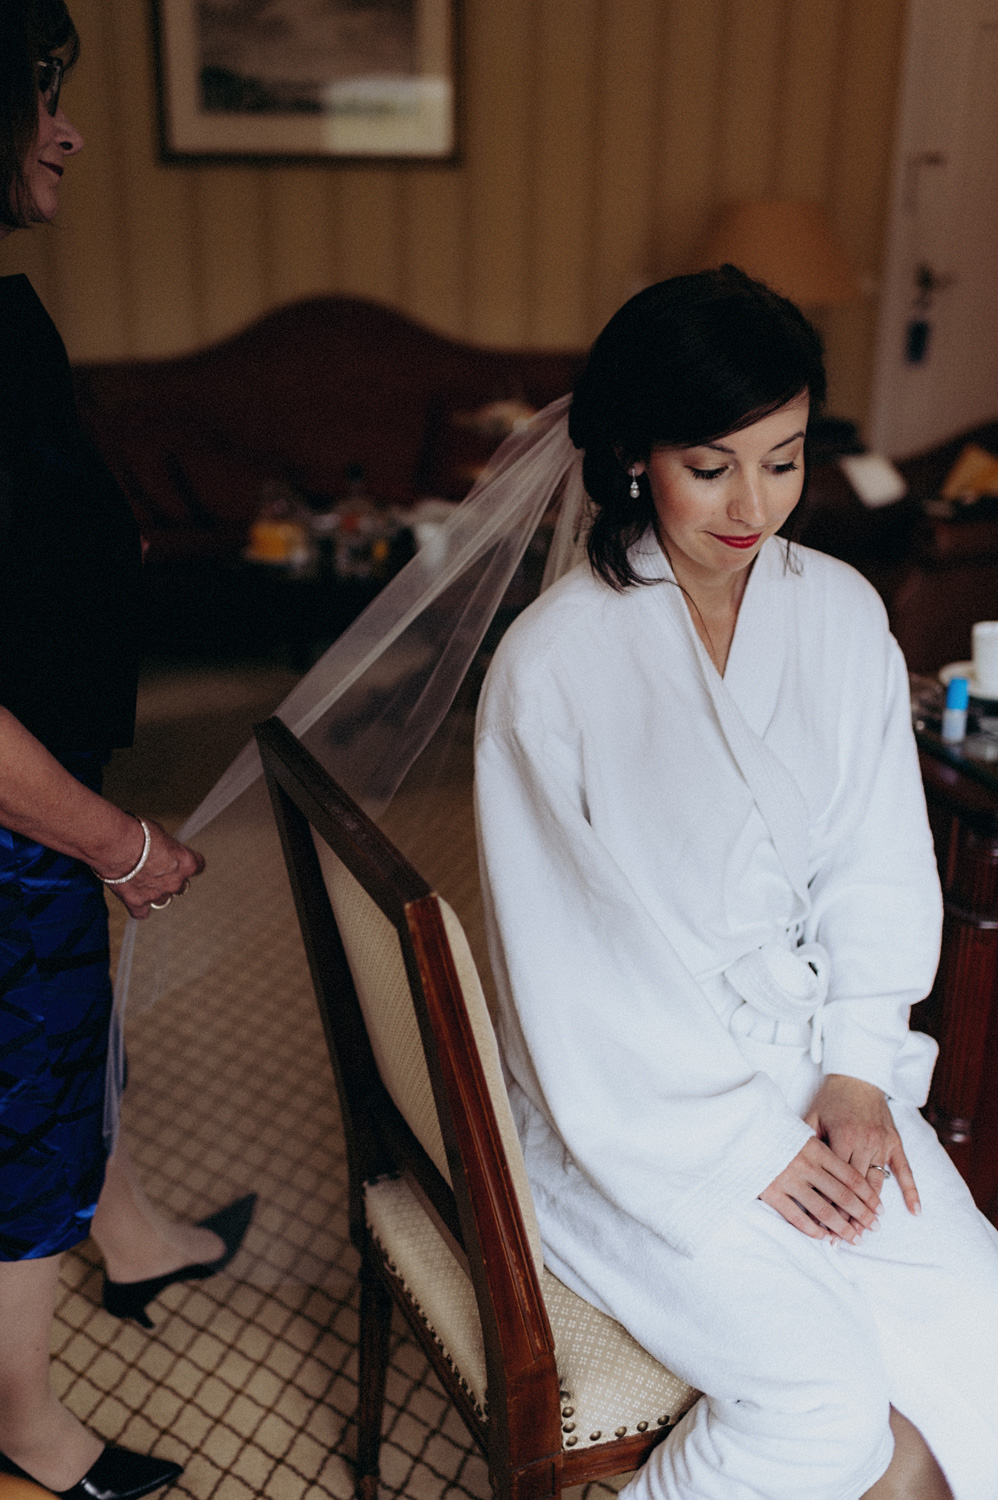 Portrait of bride during getting ready